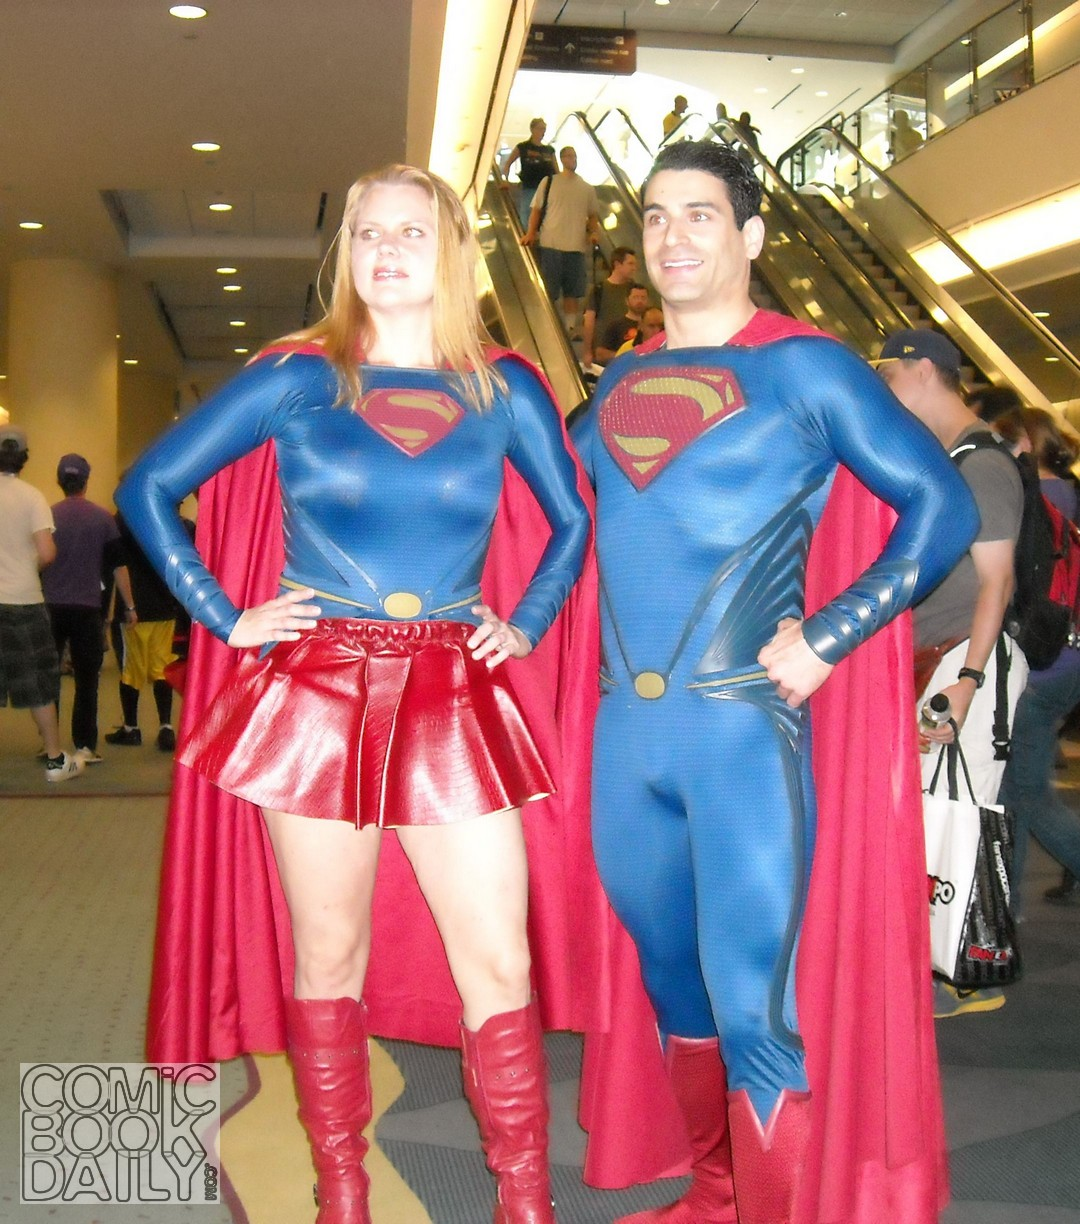 Supergirl Cosplay Flickr: Road To The Masquerade - Thursday • Comic